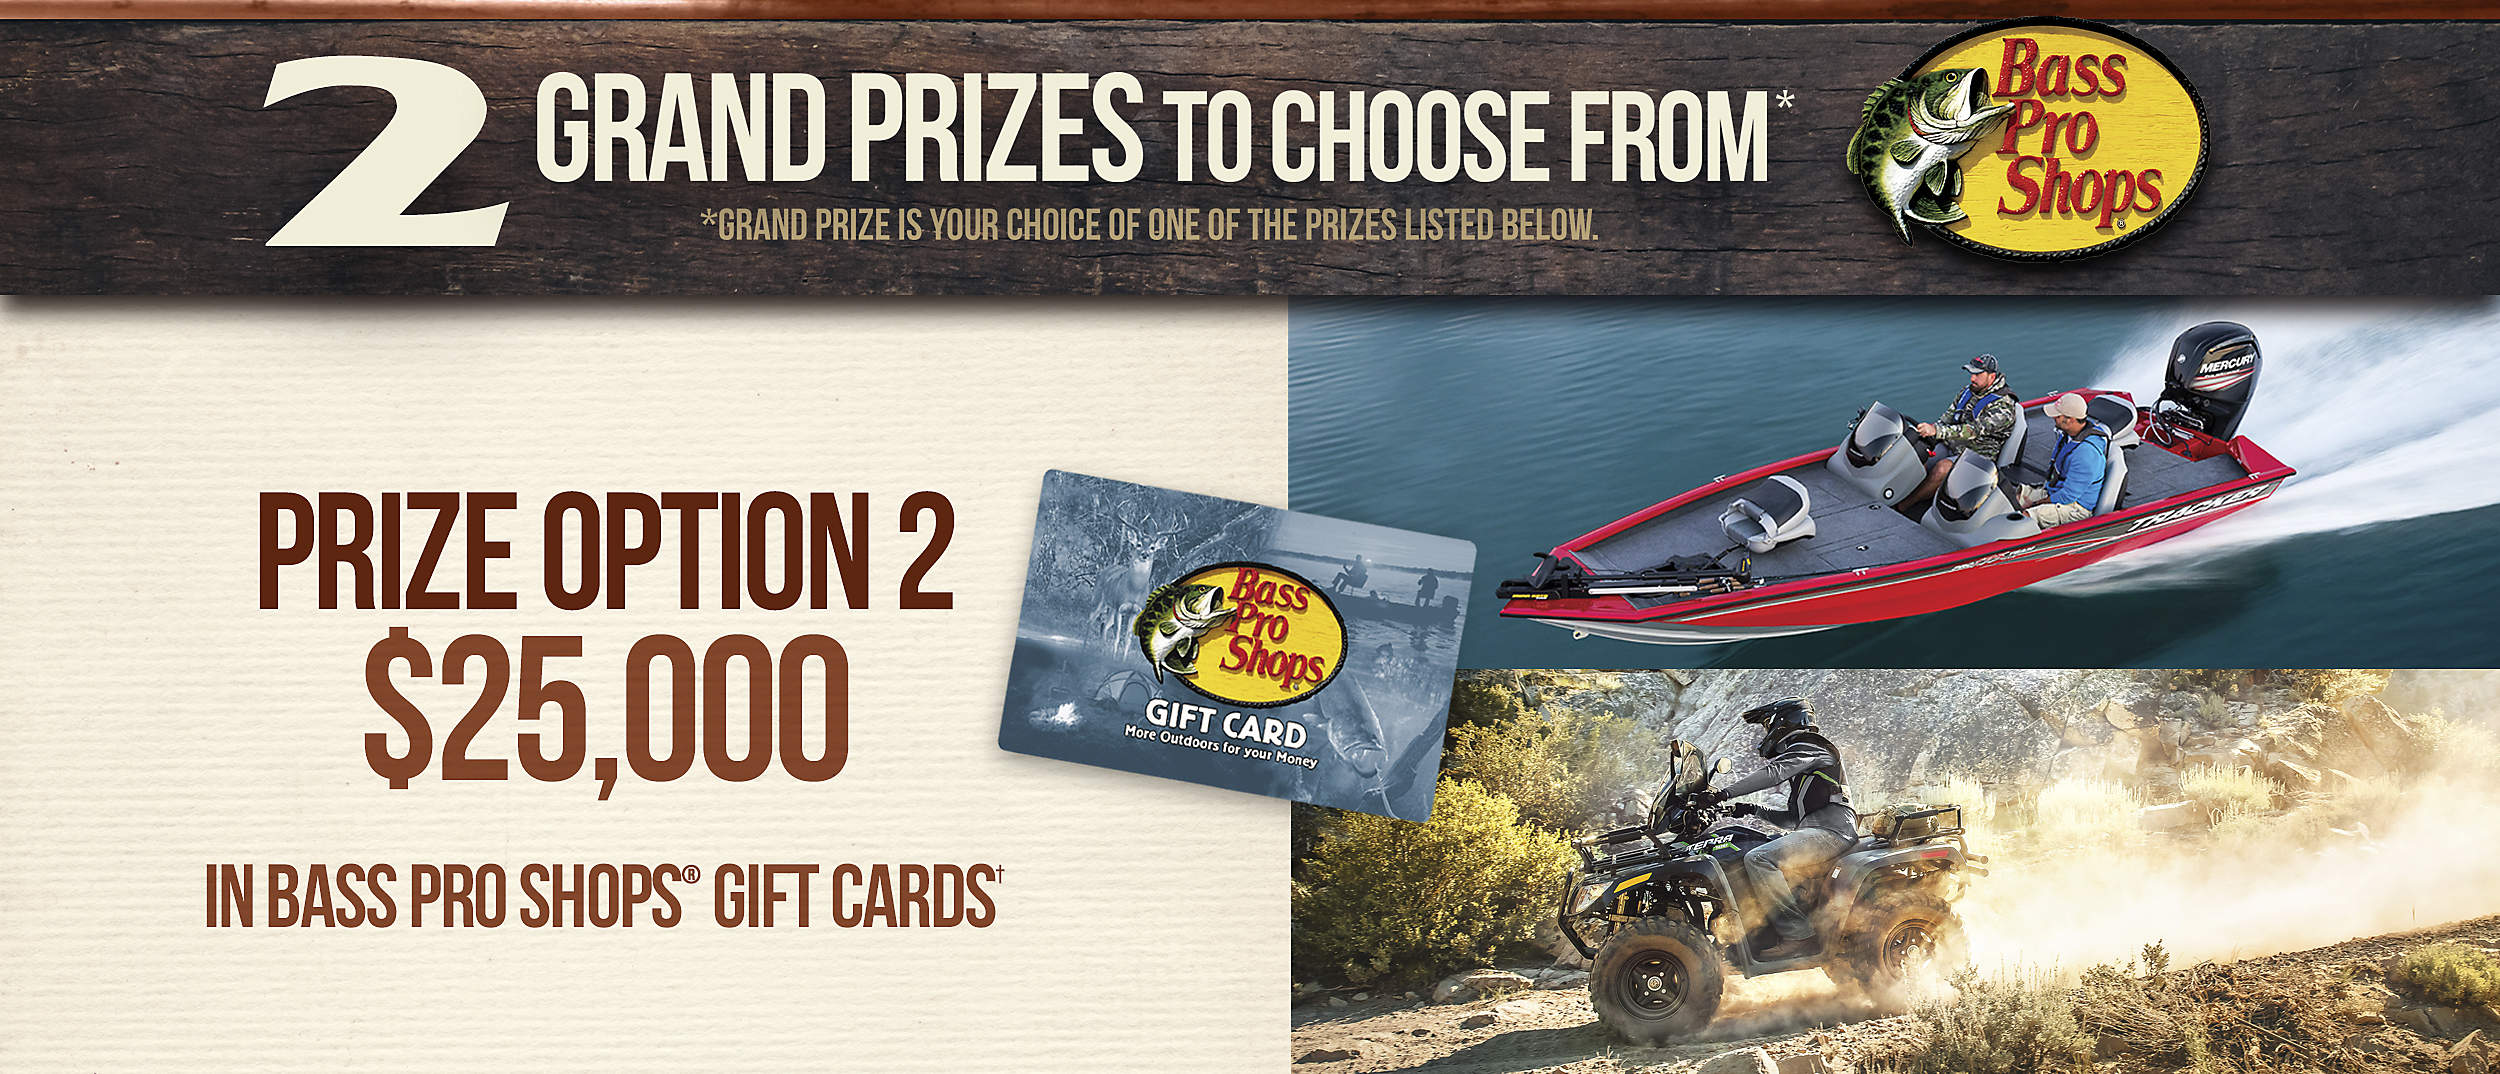 Enter to Win! Lifetime of Vacations